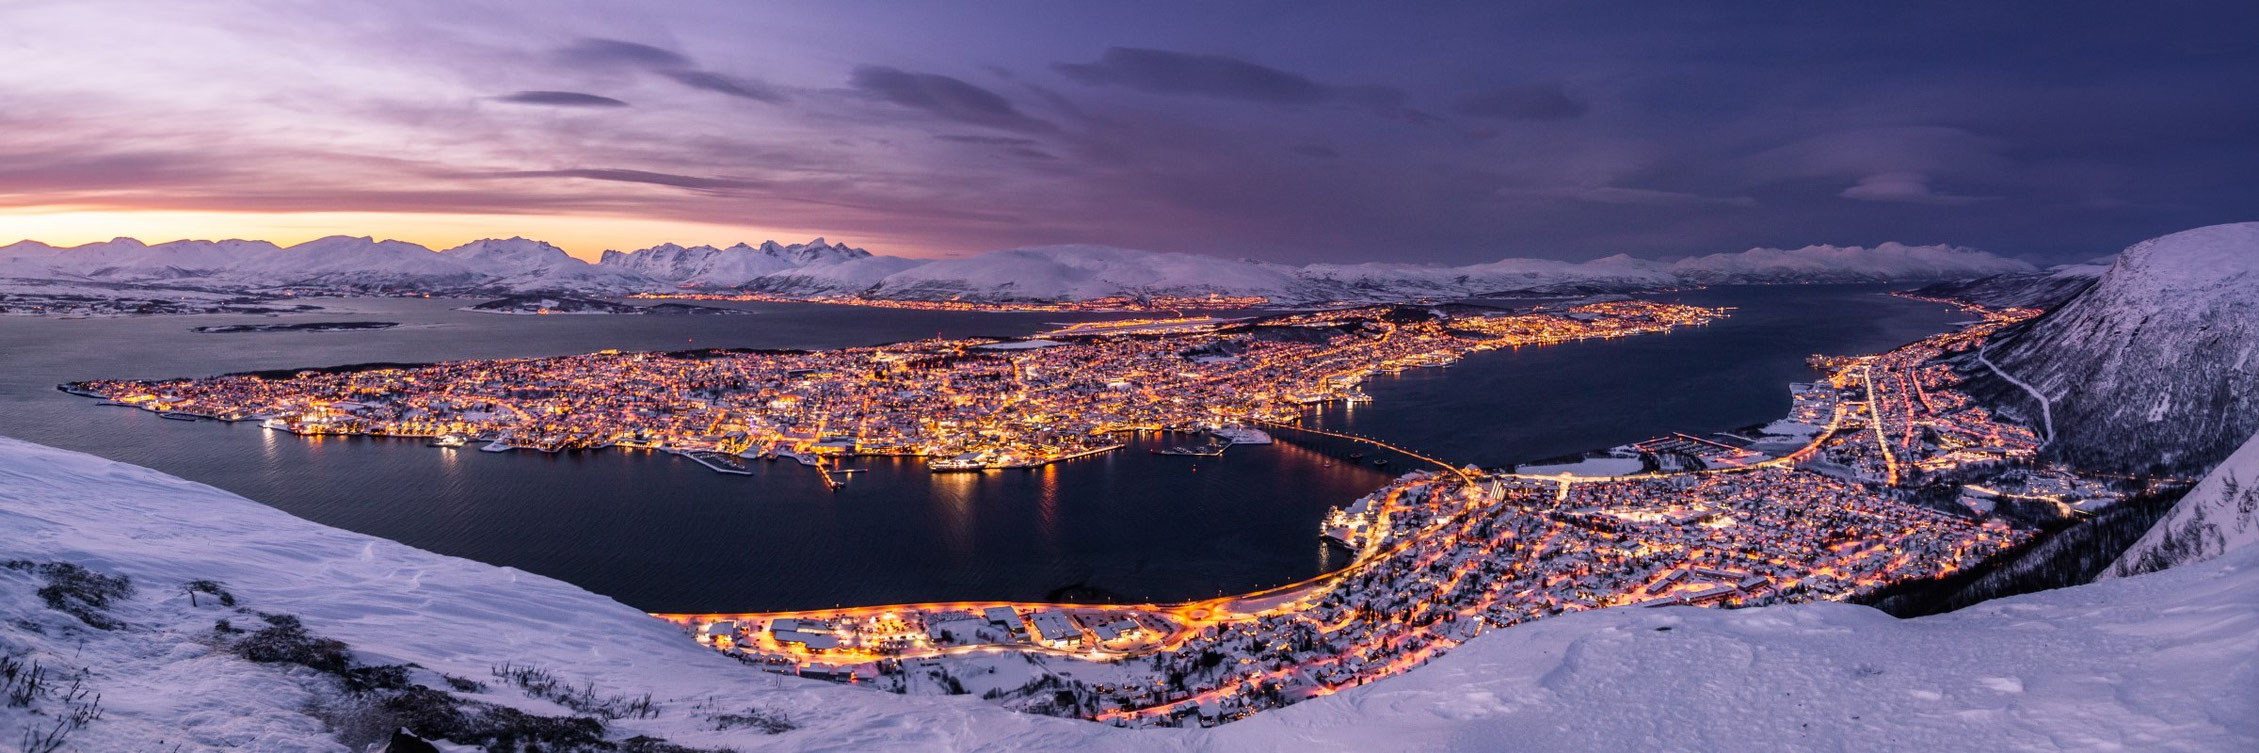 Nightscape panorama with the lights of the city of Tromso in winter.